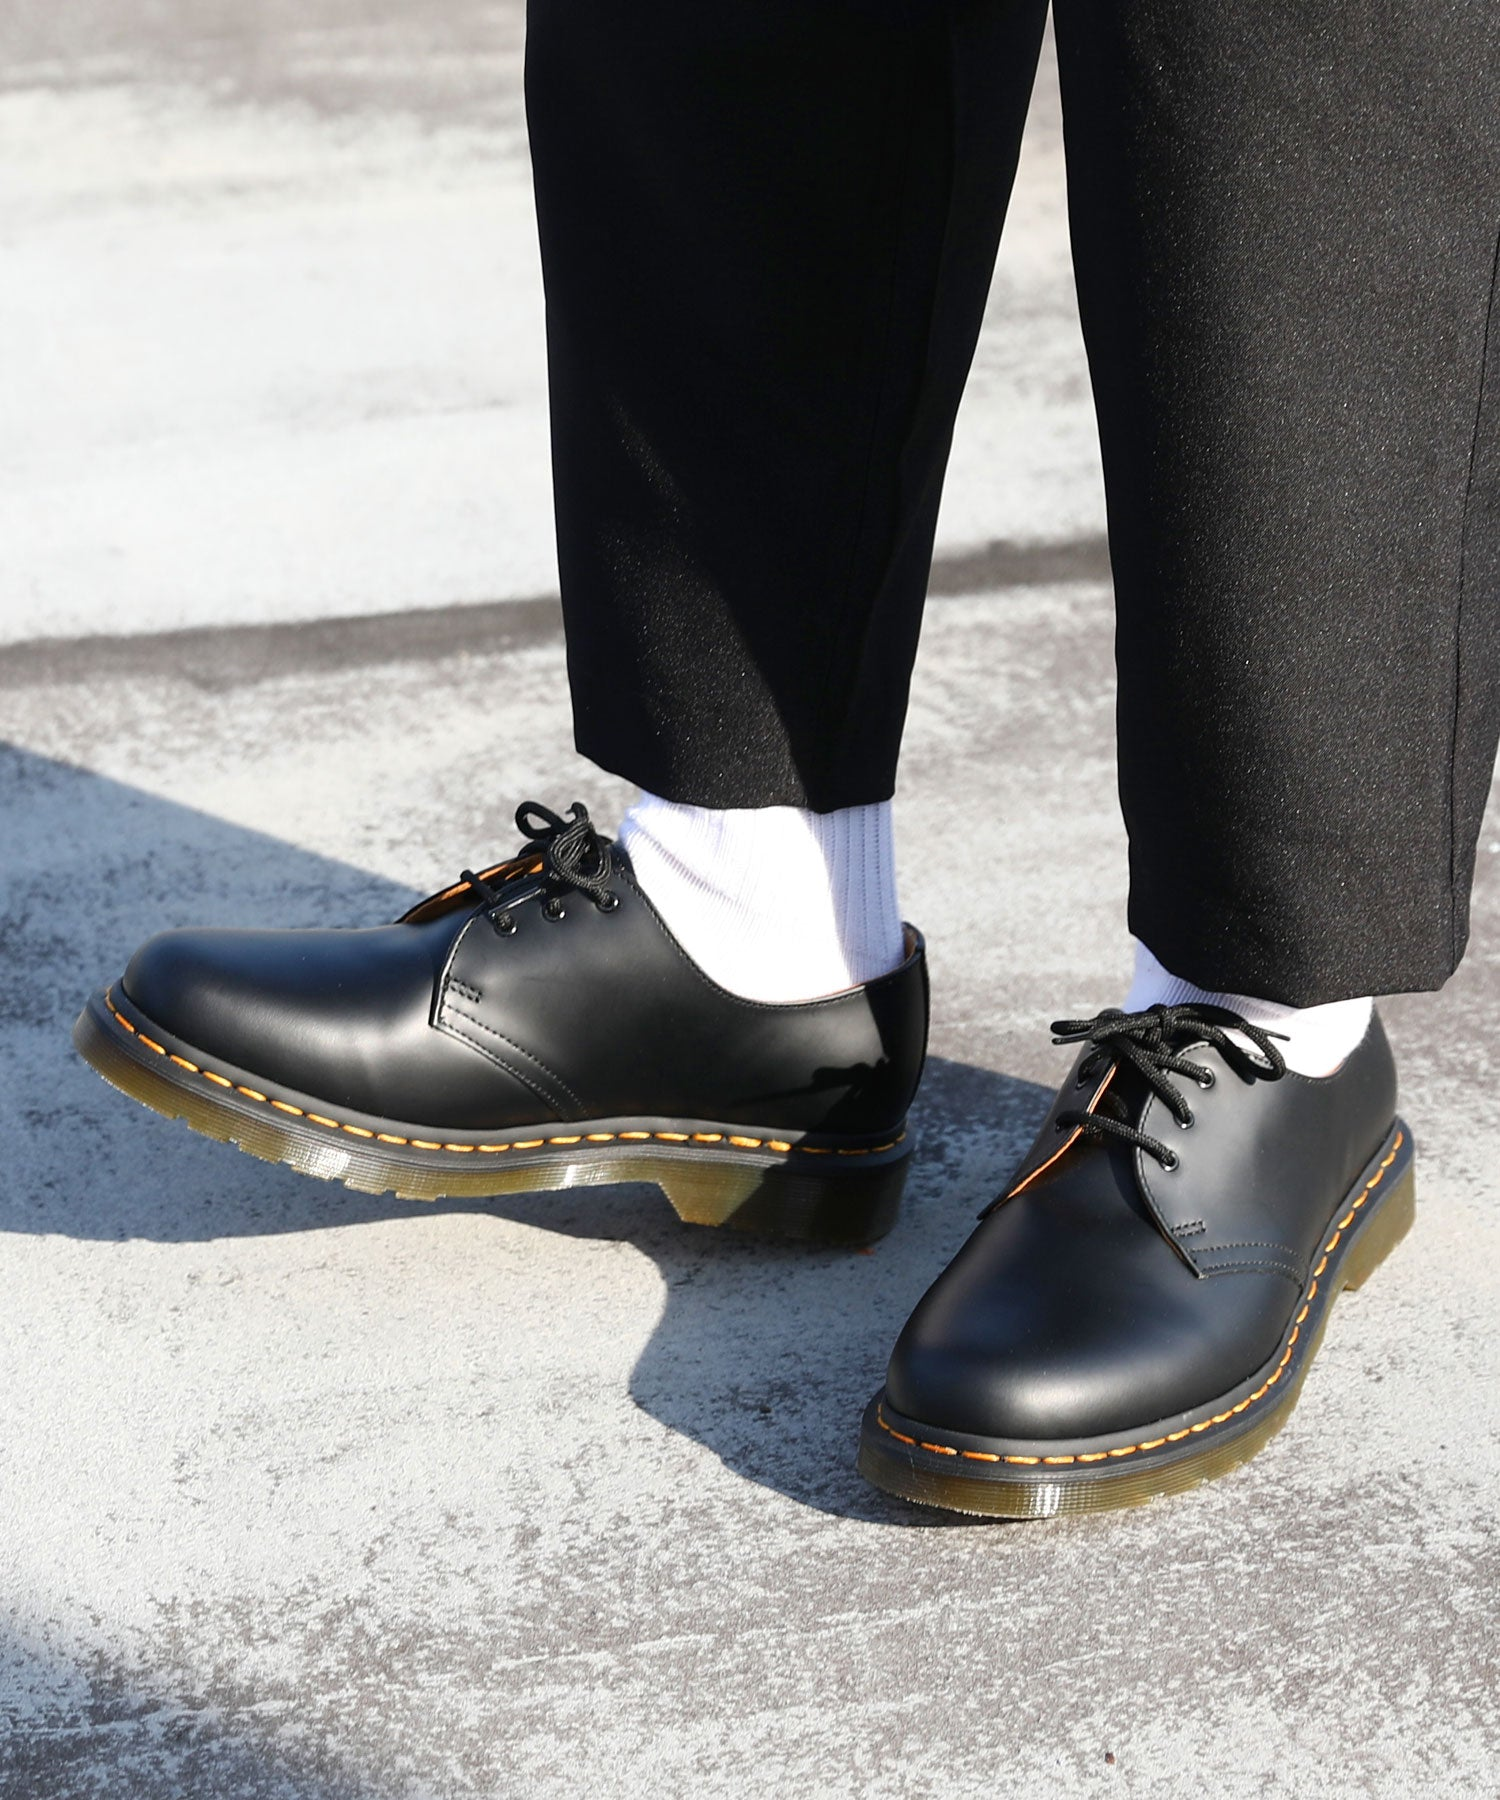 Dr.Martens 1461 3EYE GIBSON SHOE ポストマンシューズ / 8671